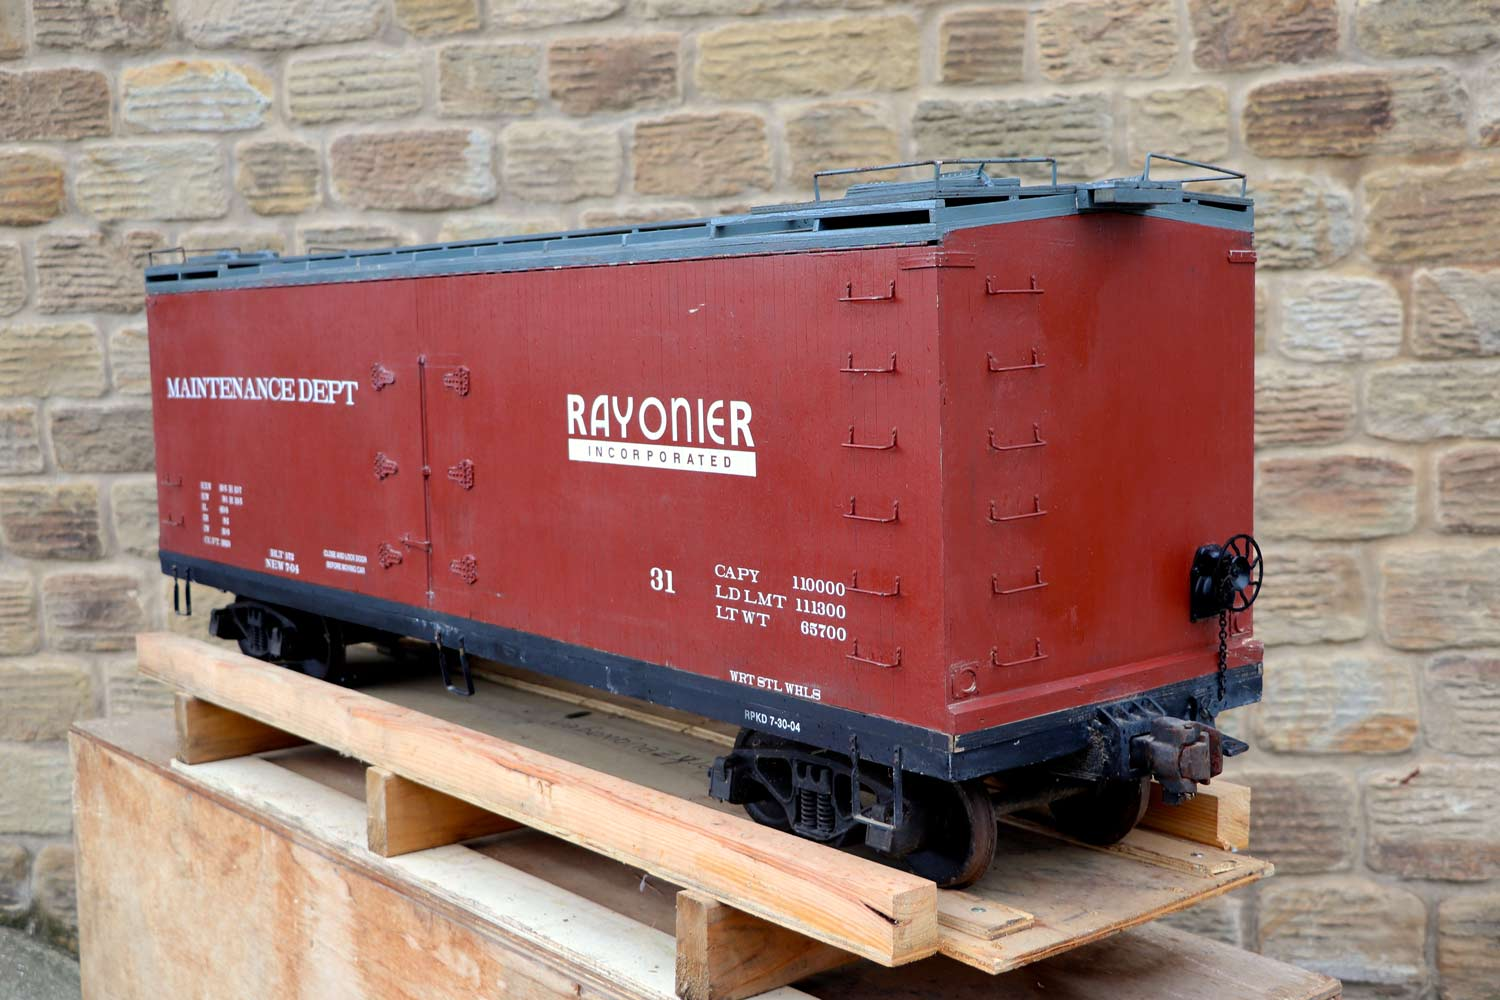 test 7-and-a-quarter-inch-brown-rayonier-hc-railroad-carriage-live-steam-for-sale-11